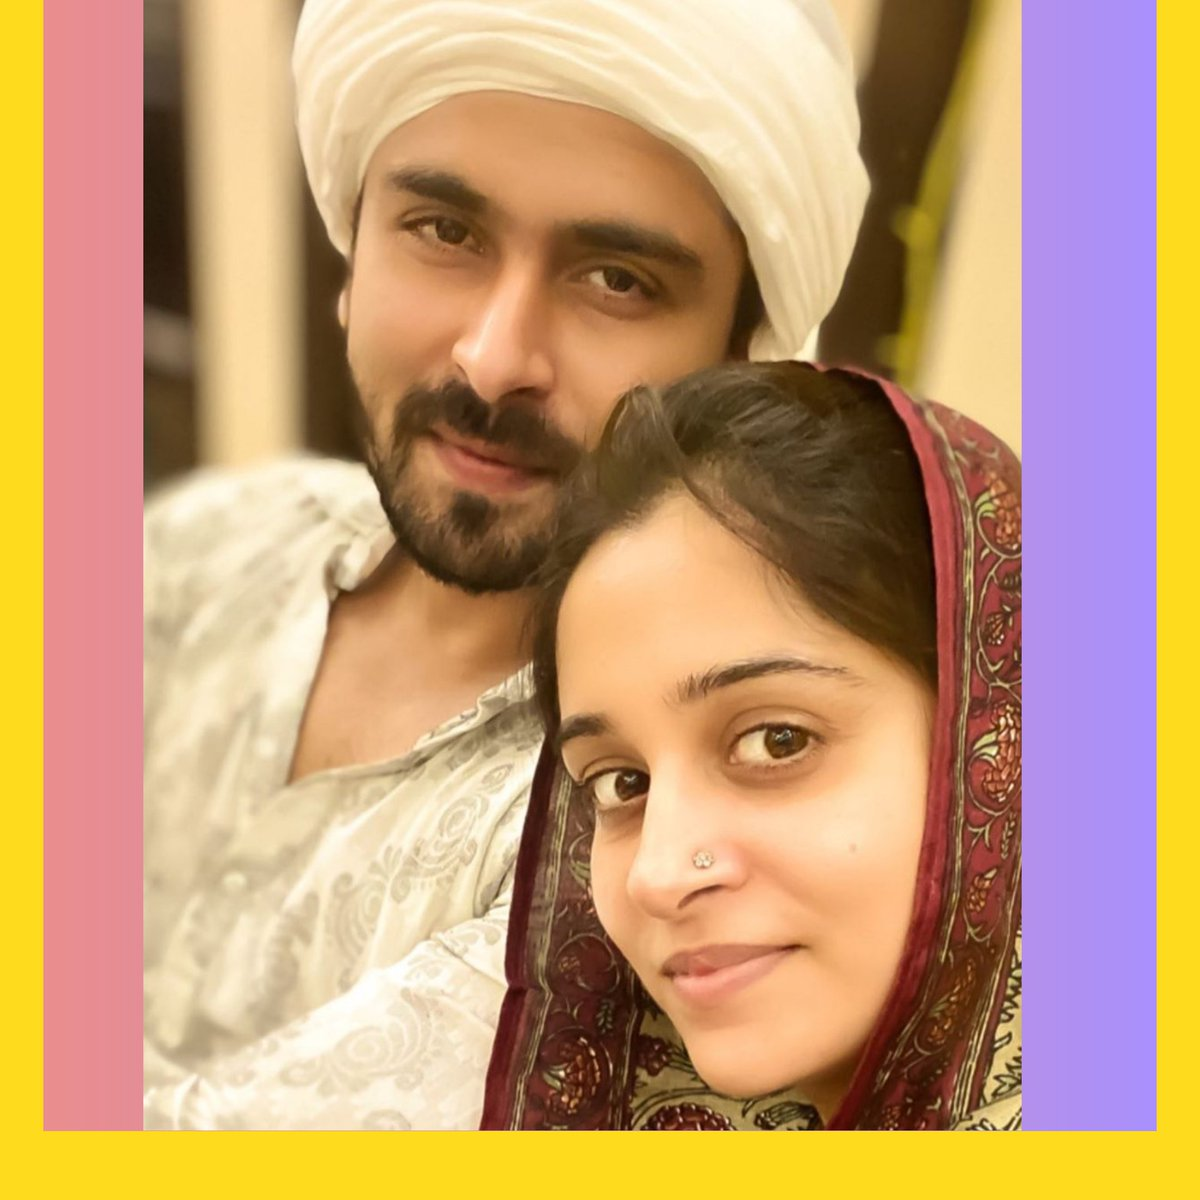 .@ms_dipika shares a picture with her husband    How many hearts for them?  #DipikaKakar #ShoaibIbrahim #Tellywood #Stayhome #Instalife #CoupleGoals #Eid #Eid2020 #EidMubarak #EidUlFitr #Ramadan #EidAlFitr #HappyEid #EidMubarak #EidMubarak2020 #PopDiariespic.twitter.com/wBjMM5DWFi